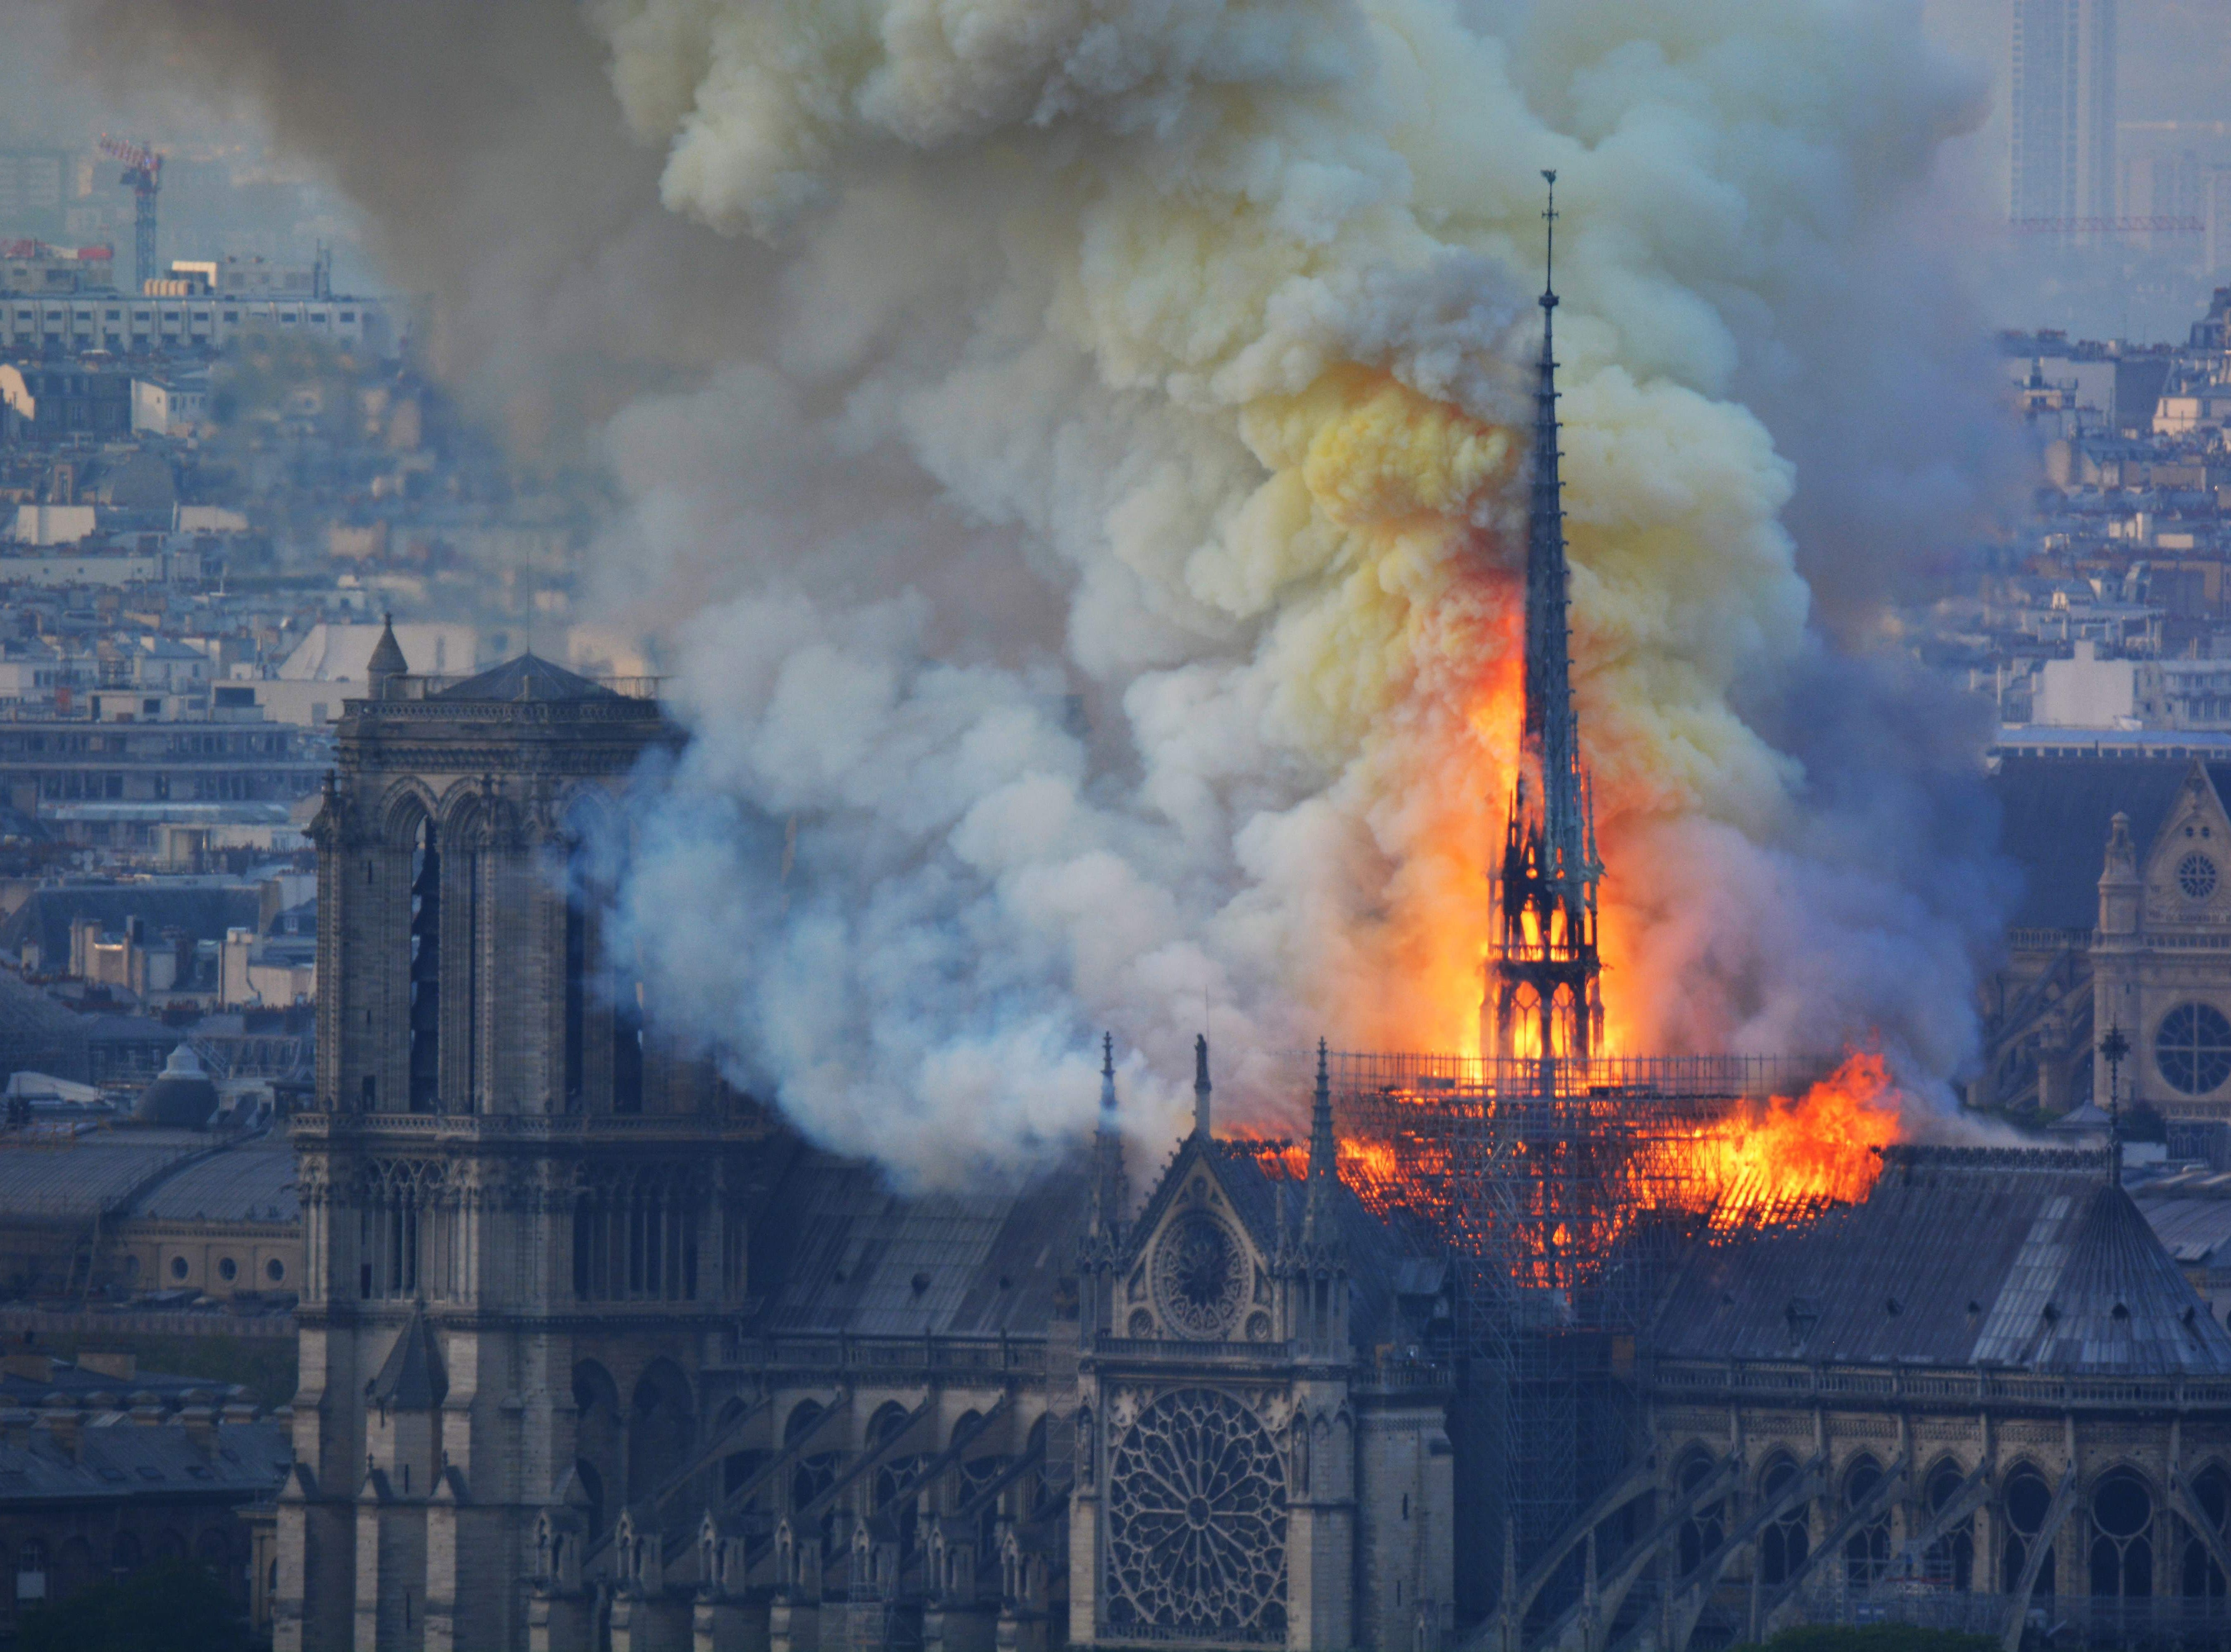 Want to help rebuild Notre-Dame? We checked out these three fund-raising efforts